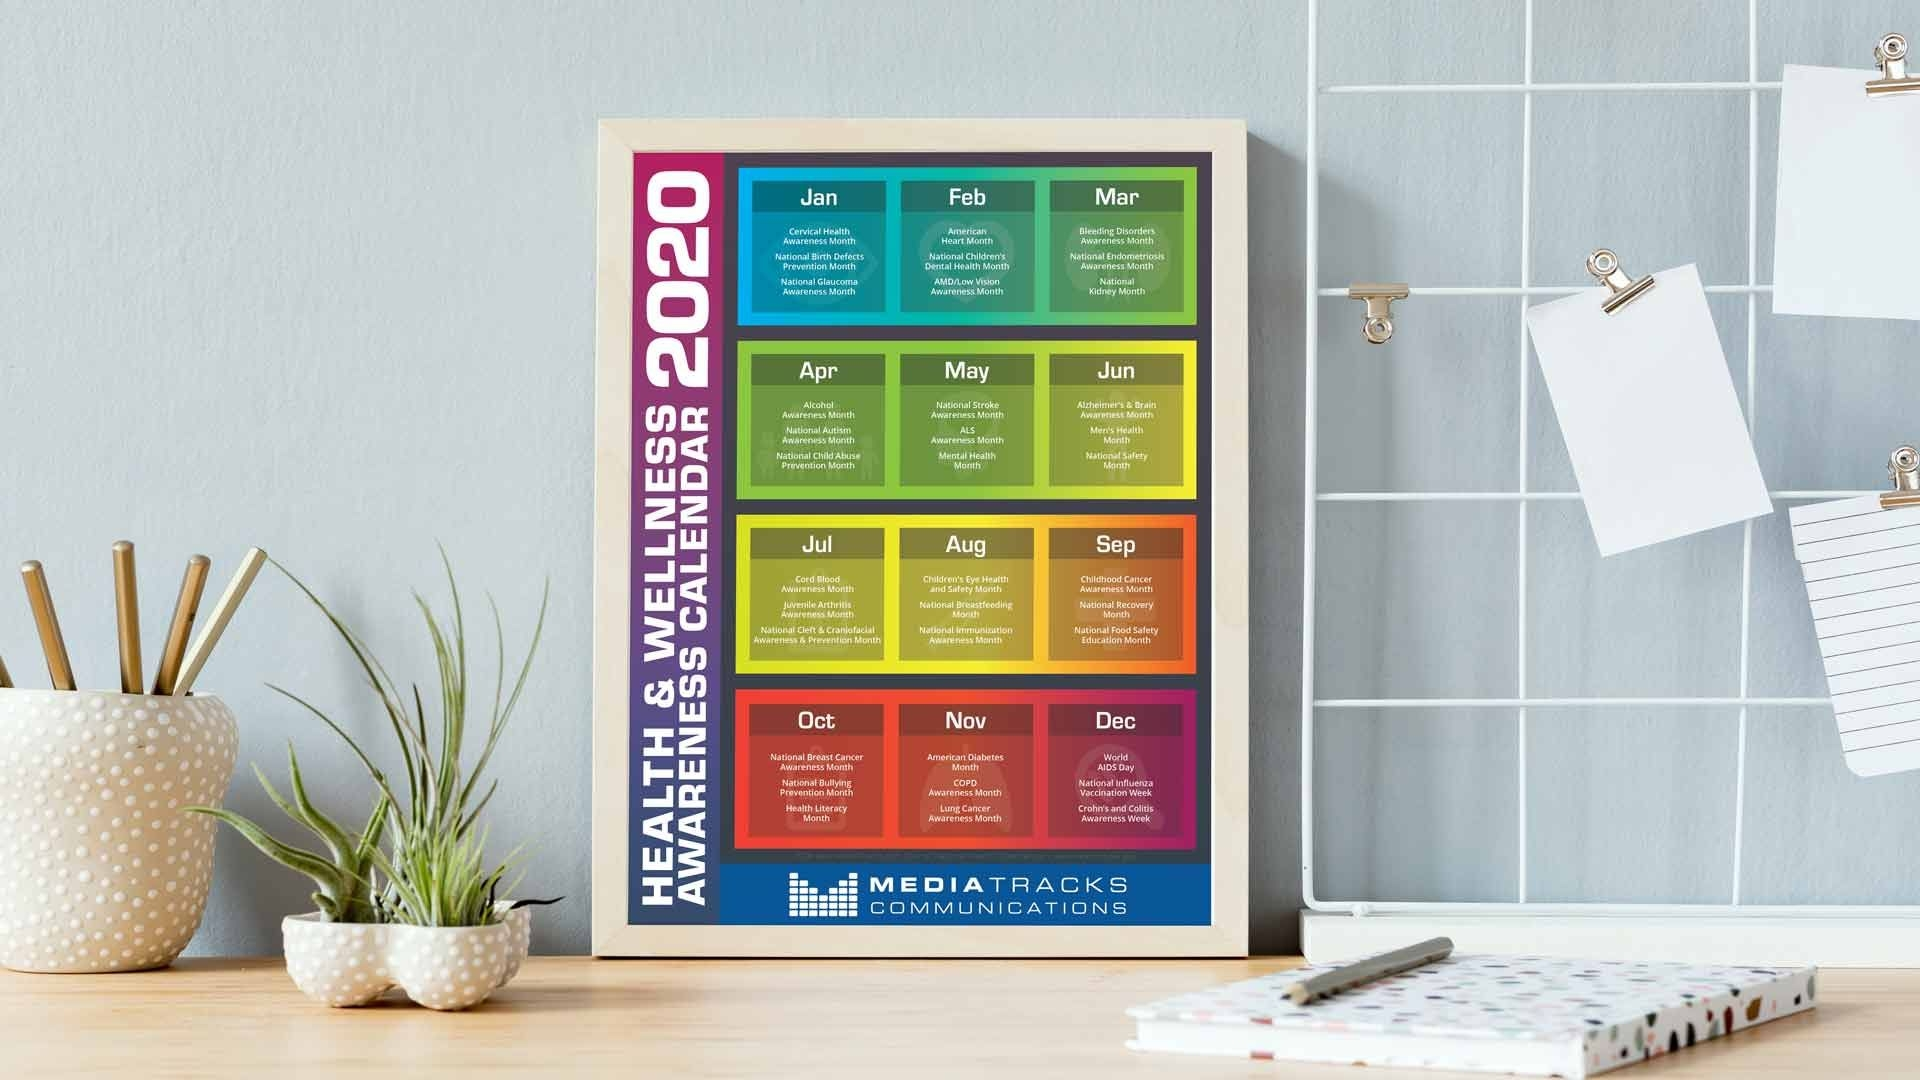 2020 health & wellness awareness calendar [infographic